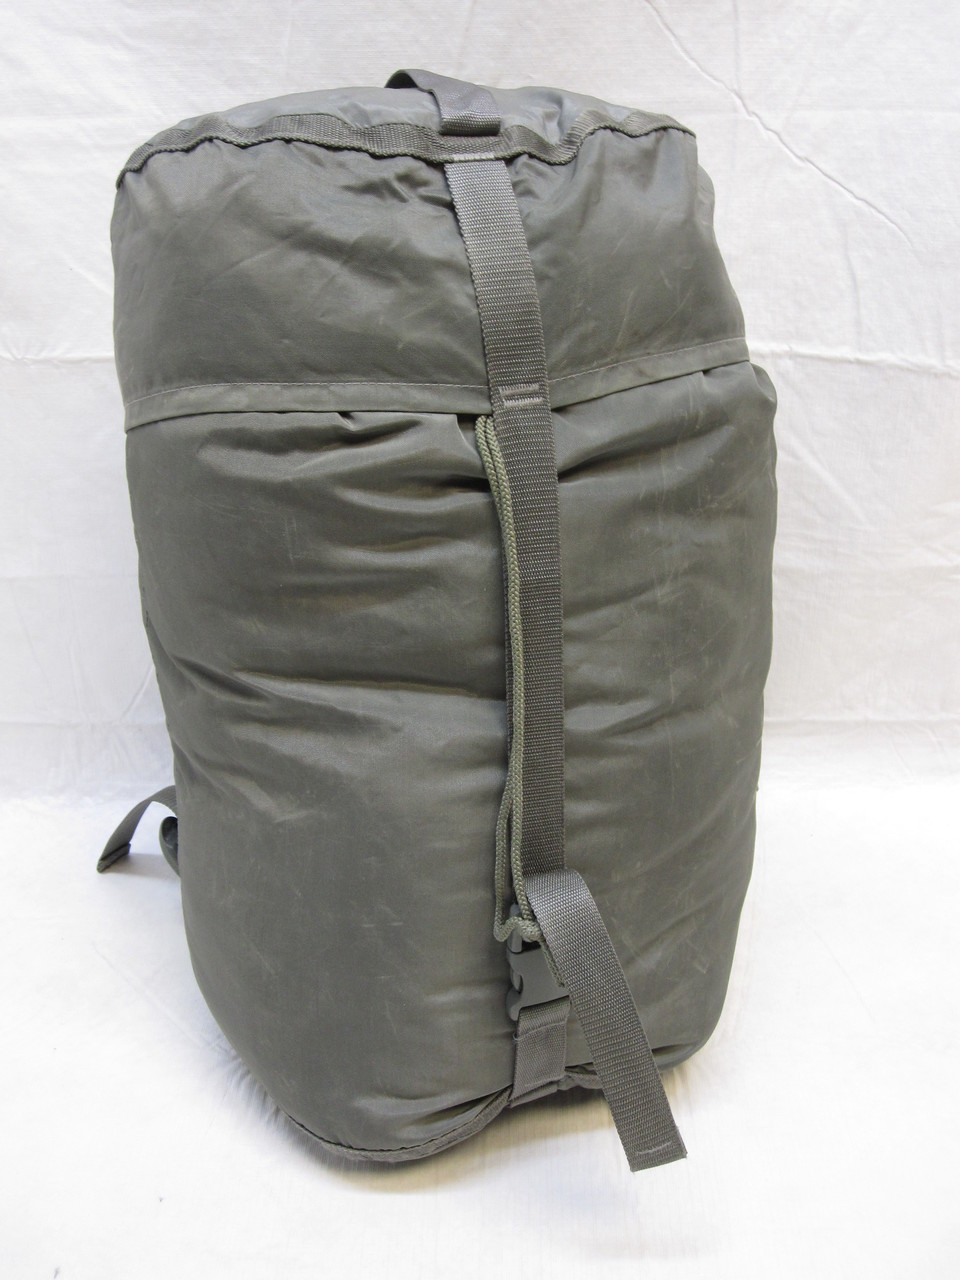 ARMY SLEEP SYSTEM SMALL COMPRESSION SACK BIVY CARRY BAG FOLIAGE